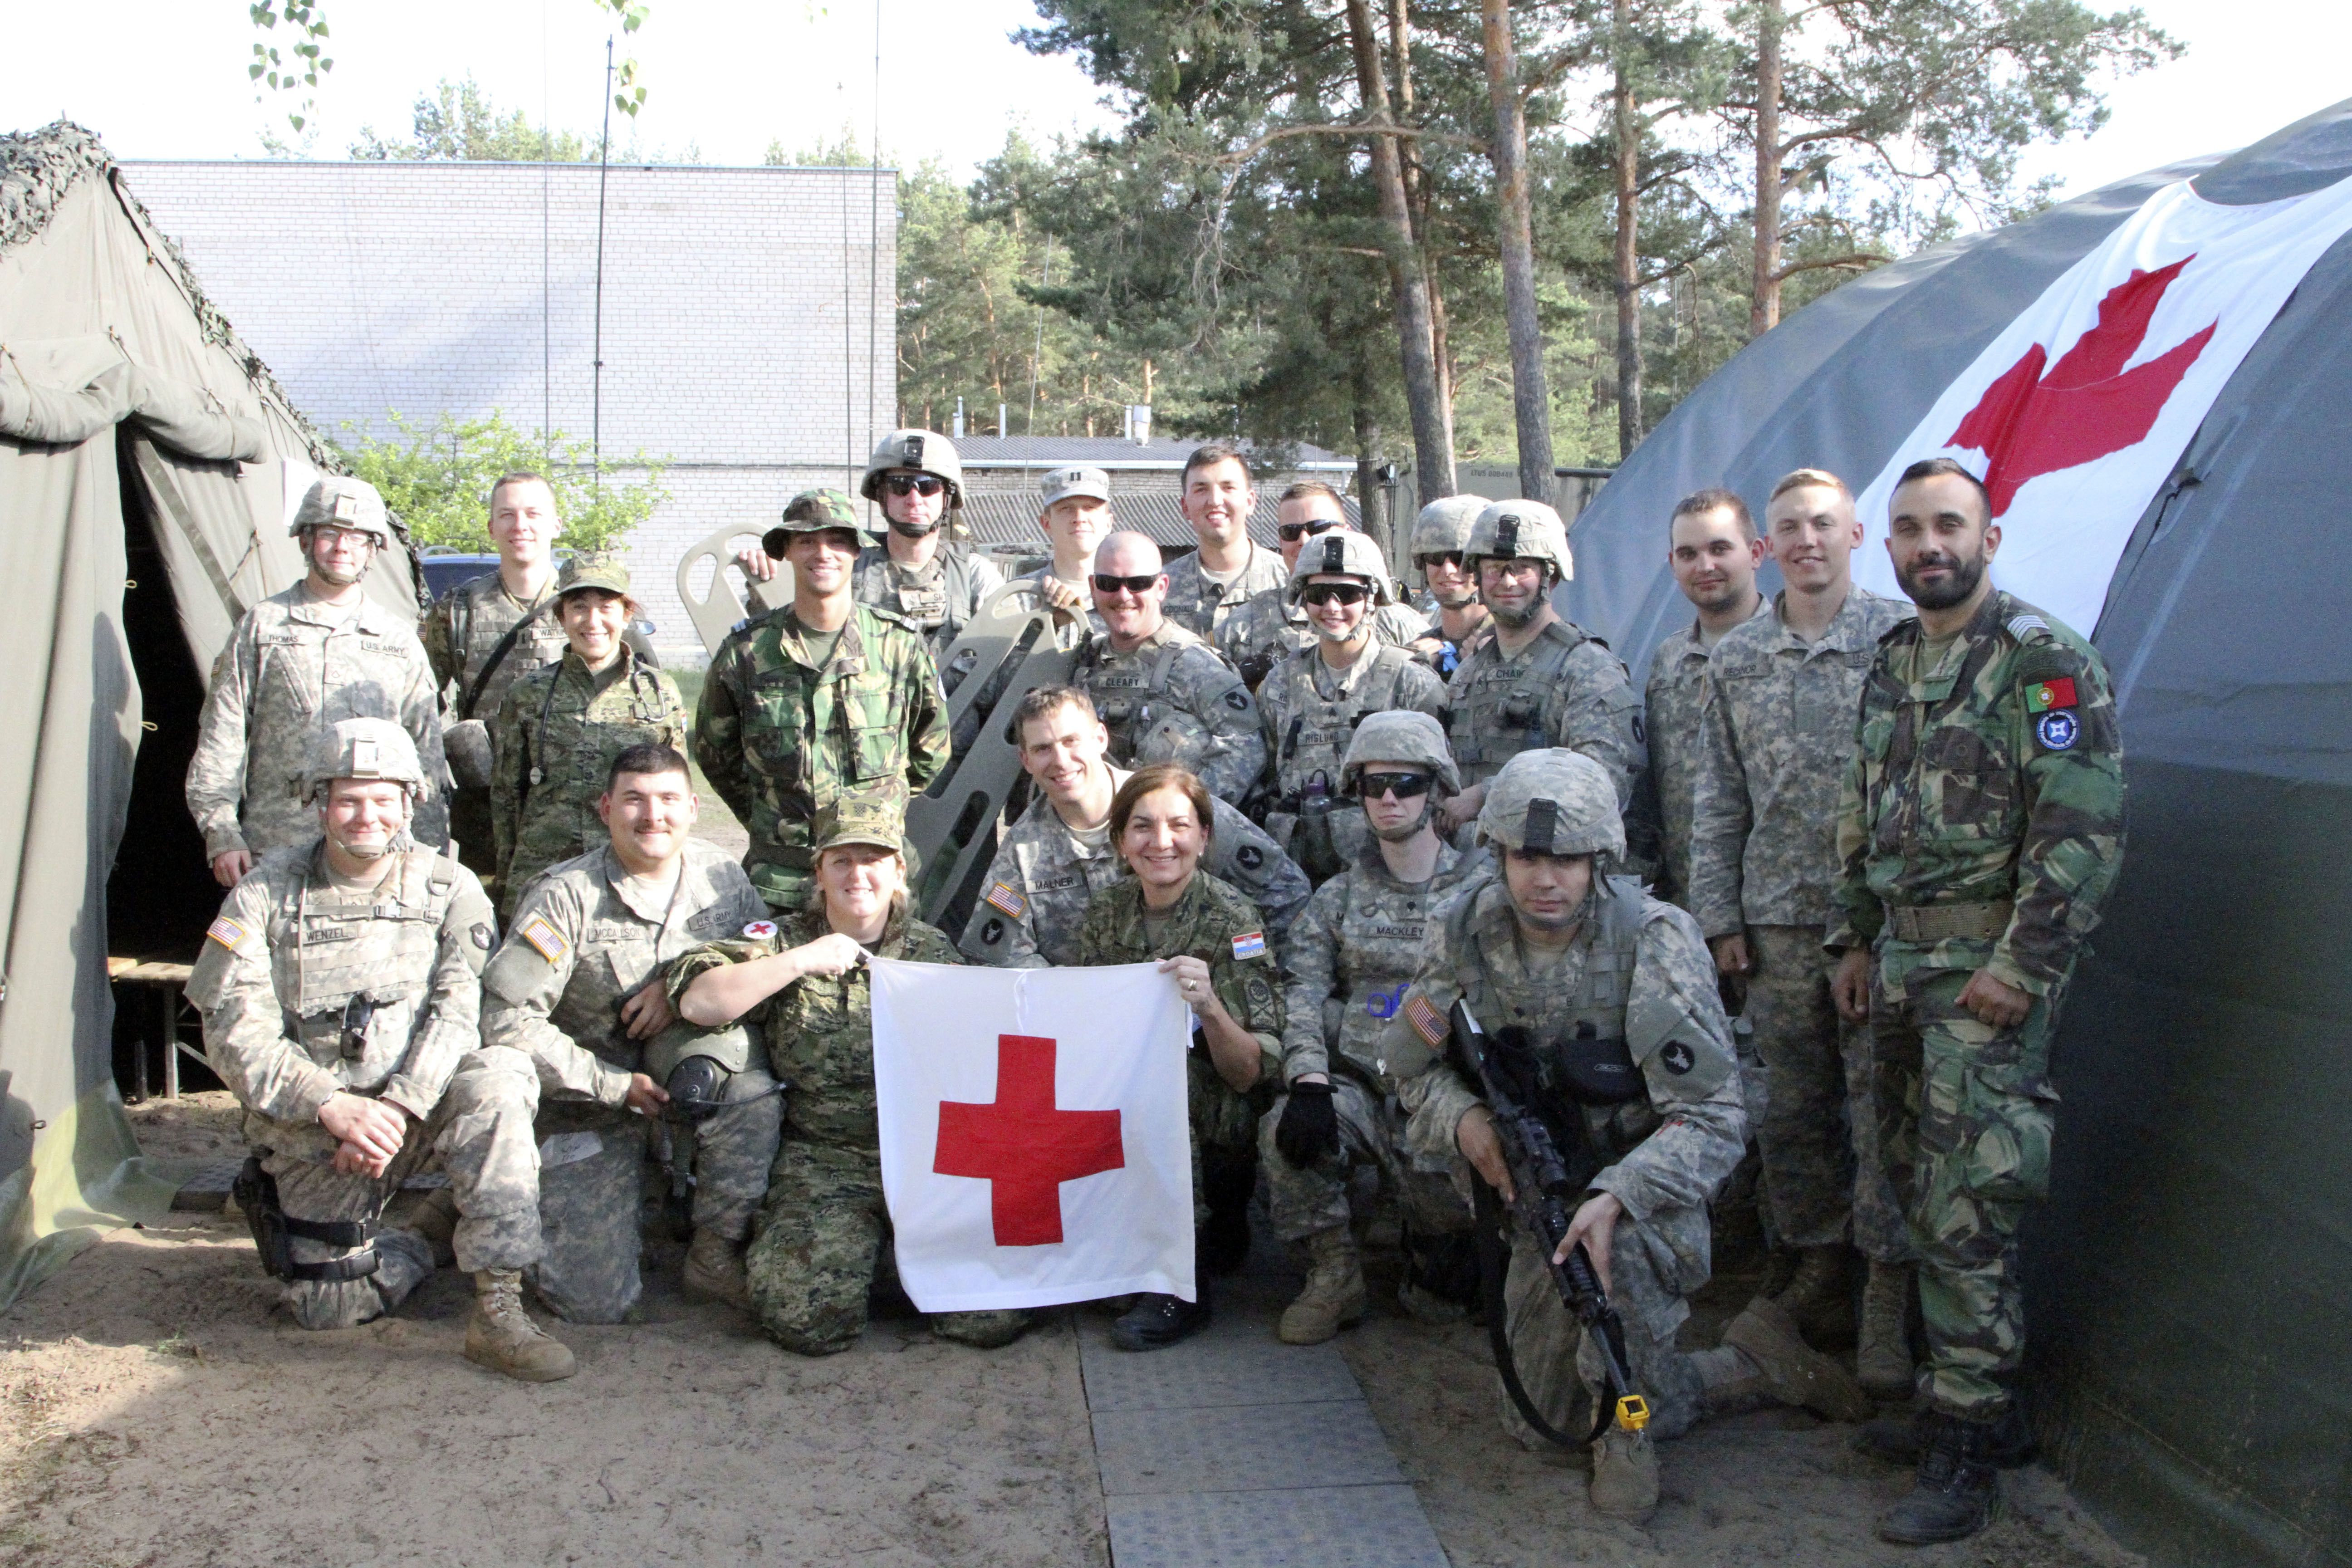 Minnesota Army National Guard Medical Soldiers work alongside Croatian and Portuguese Medical Soldiers to provide simulated and real-life Medical care during a 3-day Situational Training Exercise in Pabrade, Lithuania, during exercise Iron Wolf, Saber Strike '17. Exercise Saber Strike is a US Army Europe-led theater exercise designed to enhance interoperability between NATO forces and key regional partners. (US Army photo by Sgt. Amberlee Boverhuis/RELEASED)